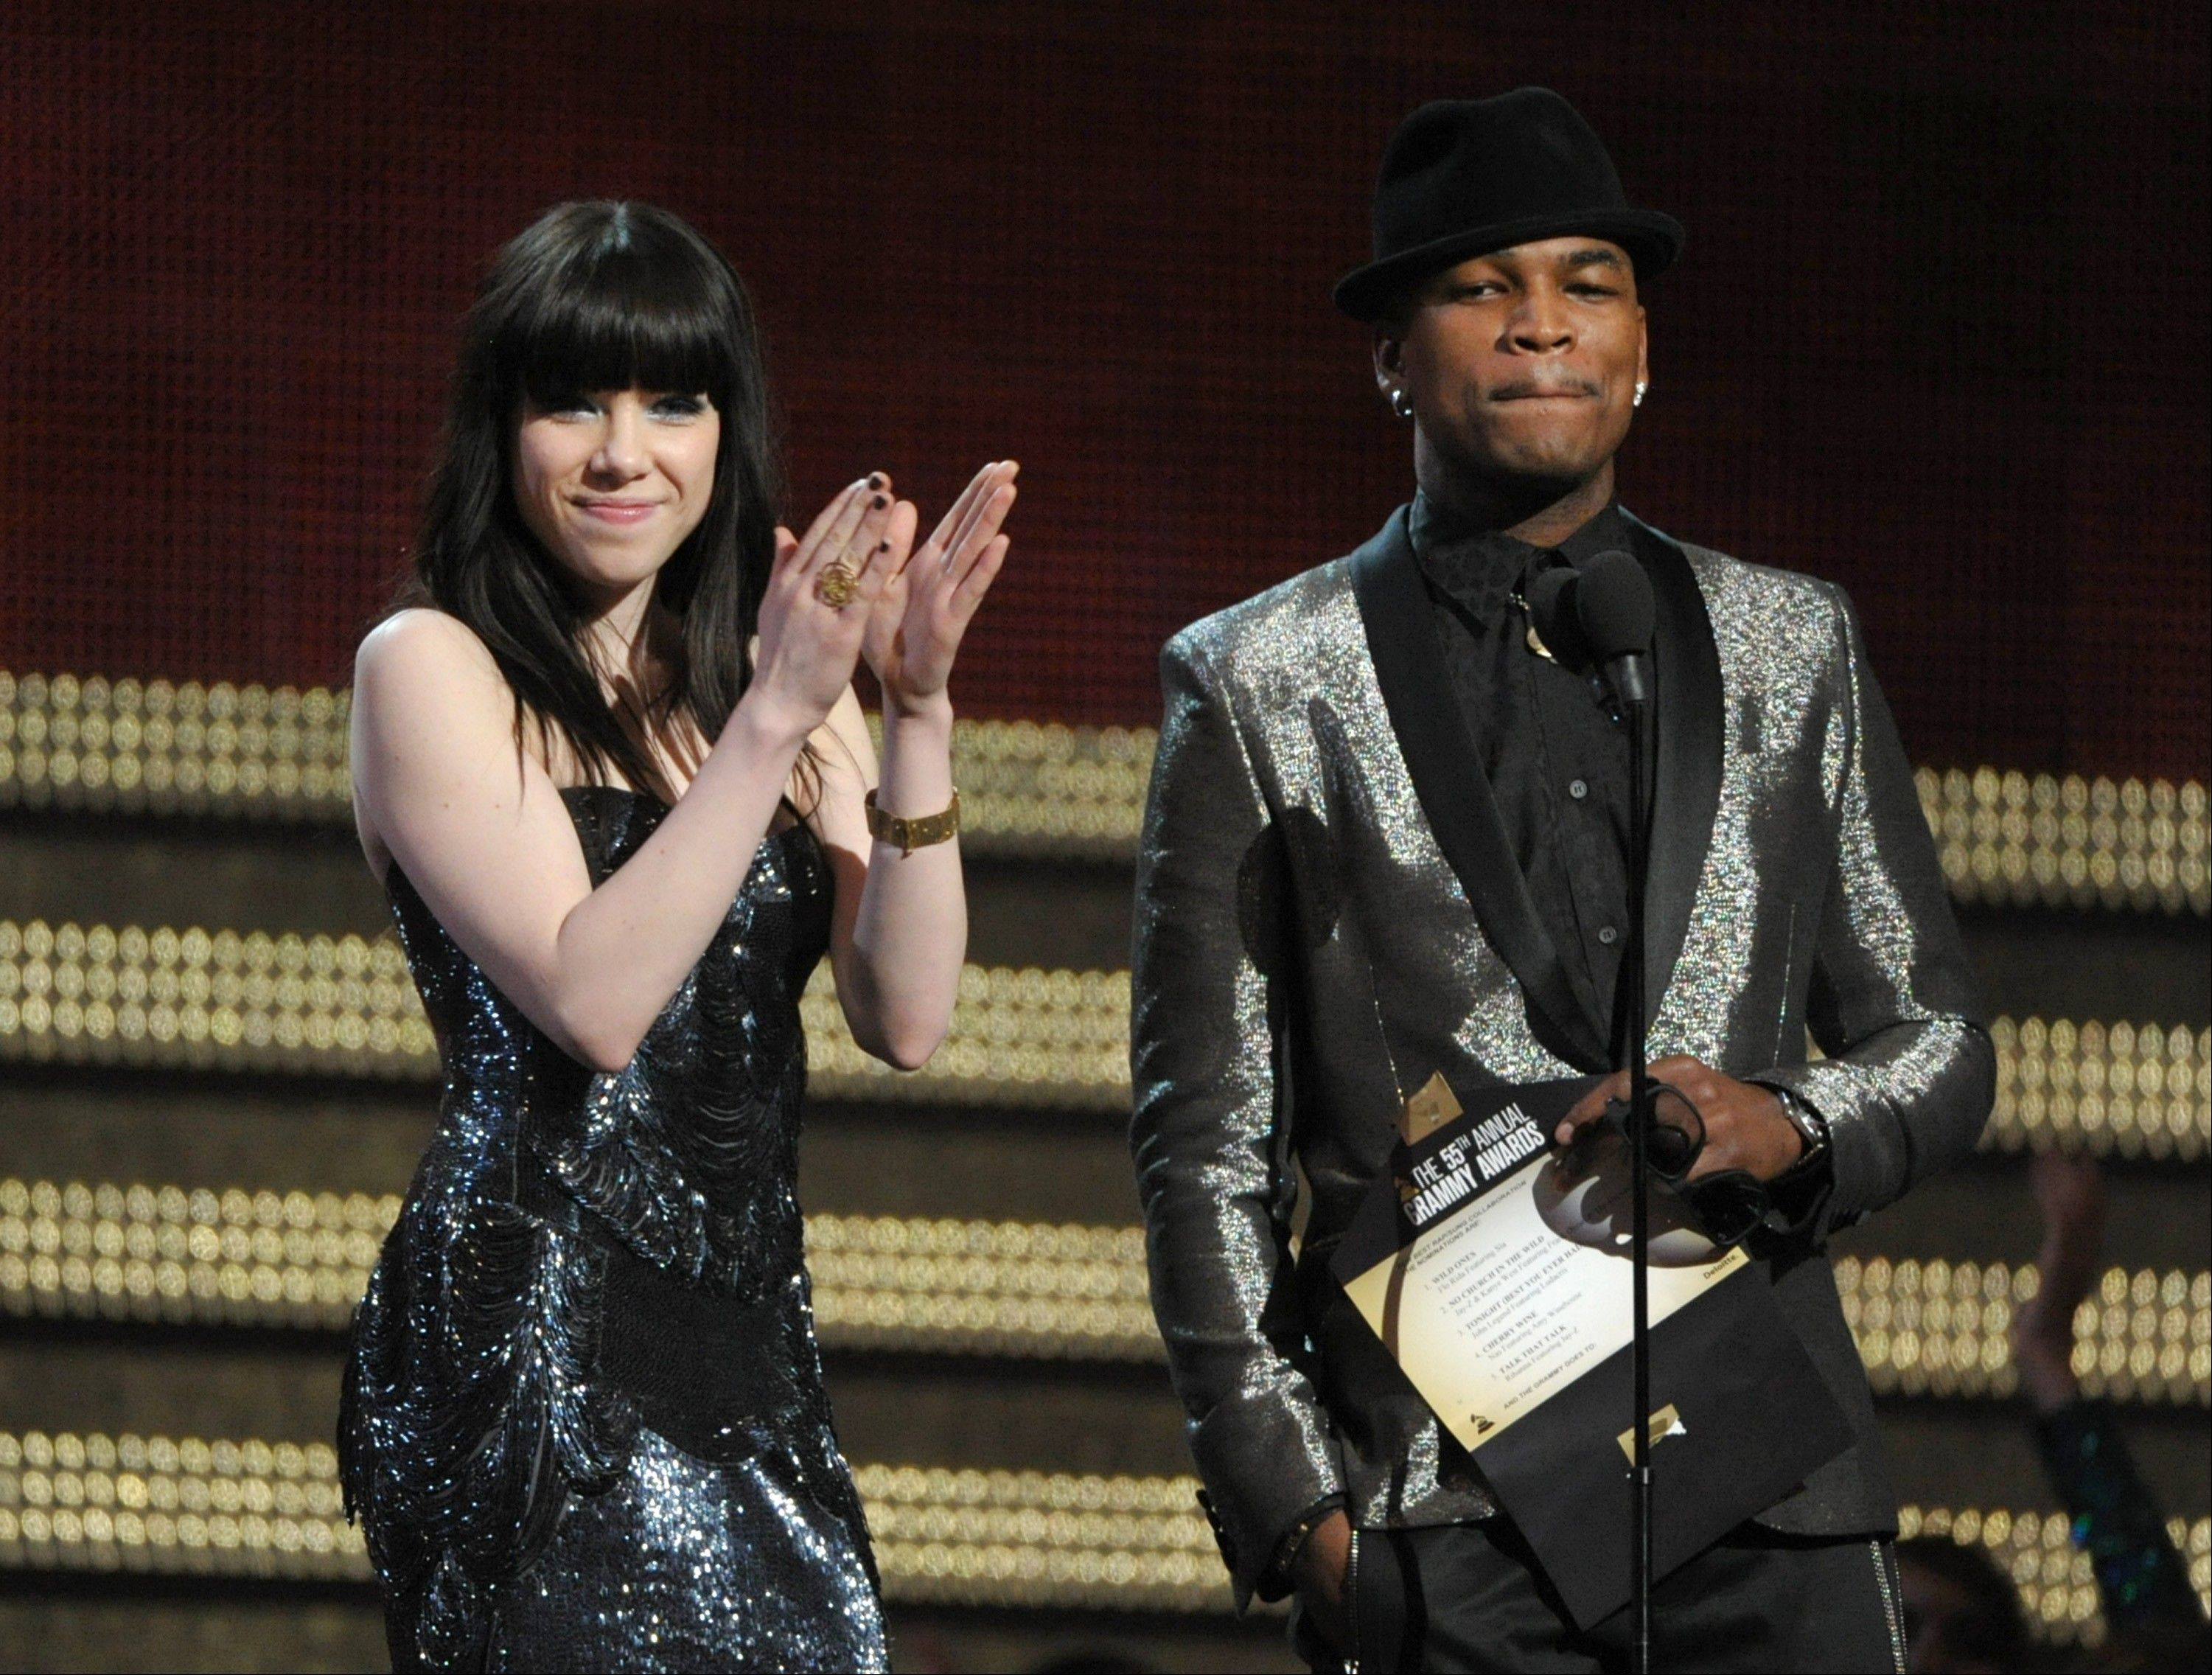 Carly Rae Jepsen, left, and Ne-Yo present the award for best rap/sung collaboration at the 55th annual Grammy Awards on Sunday, Feb. 10, 2013, in Los Angeles.